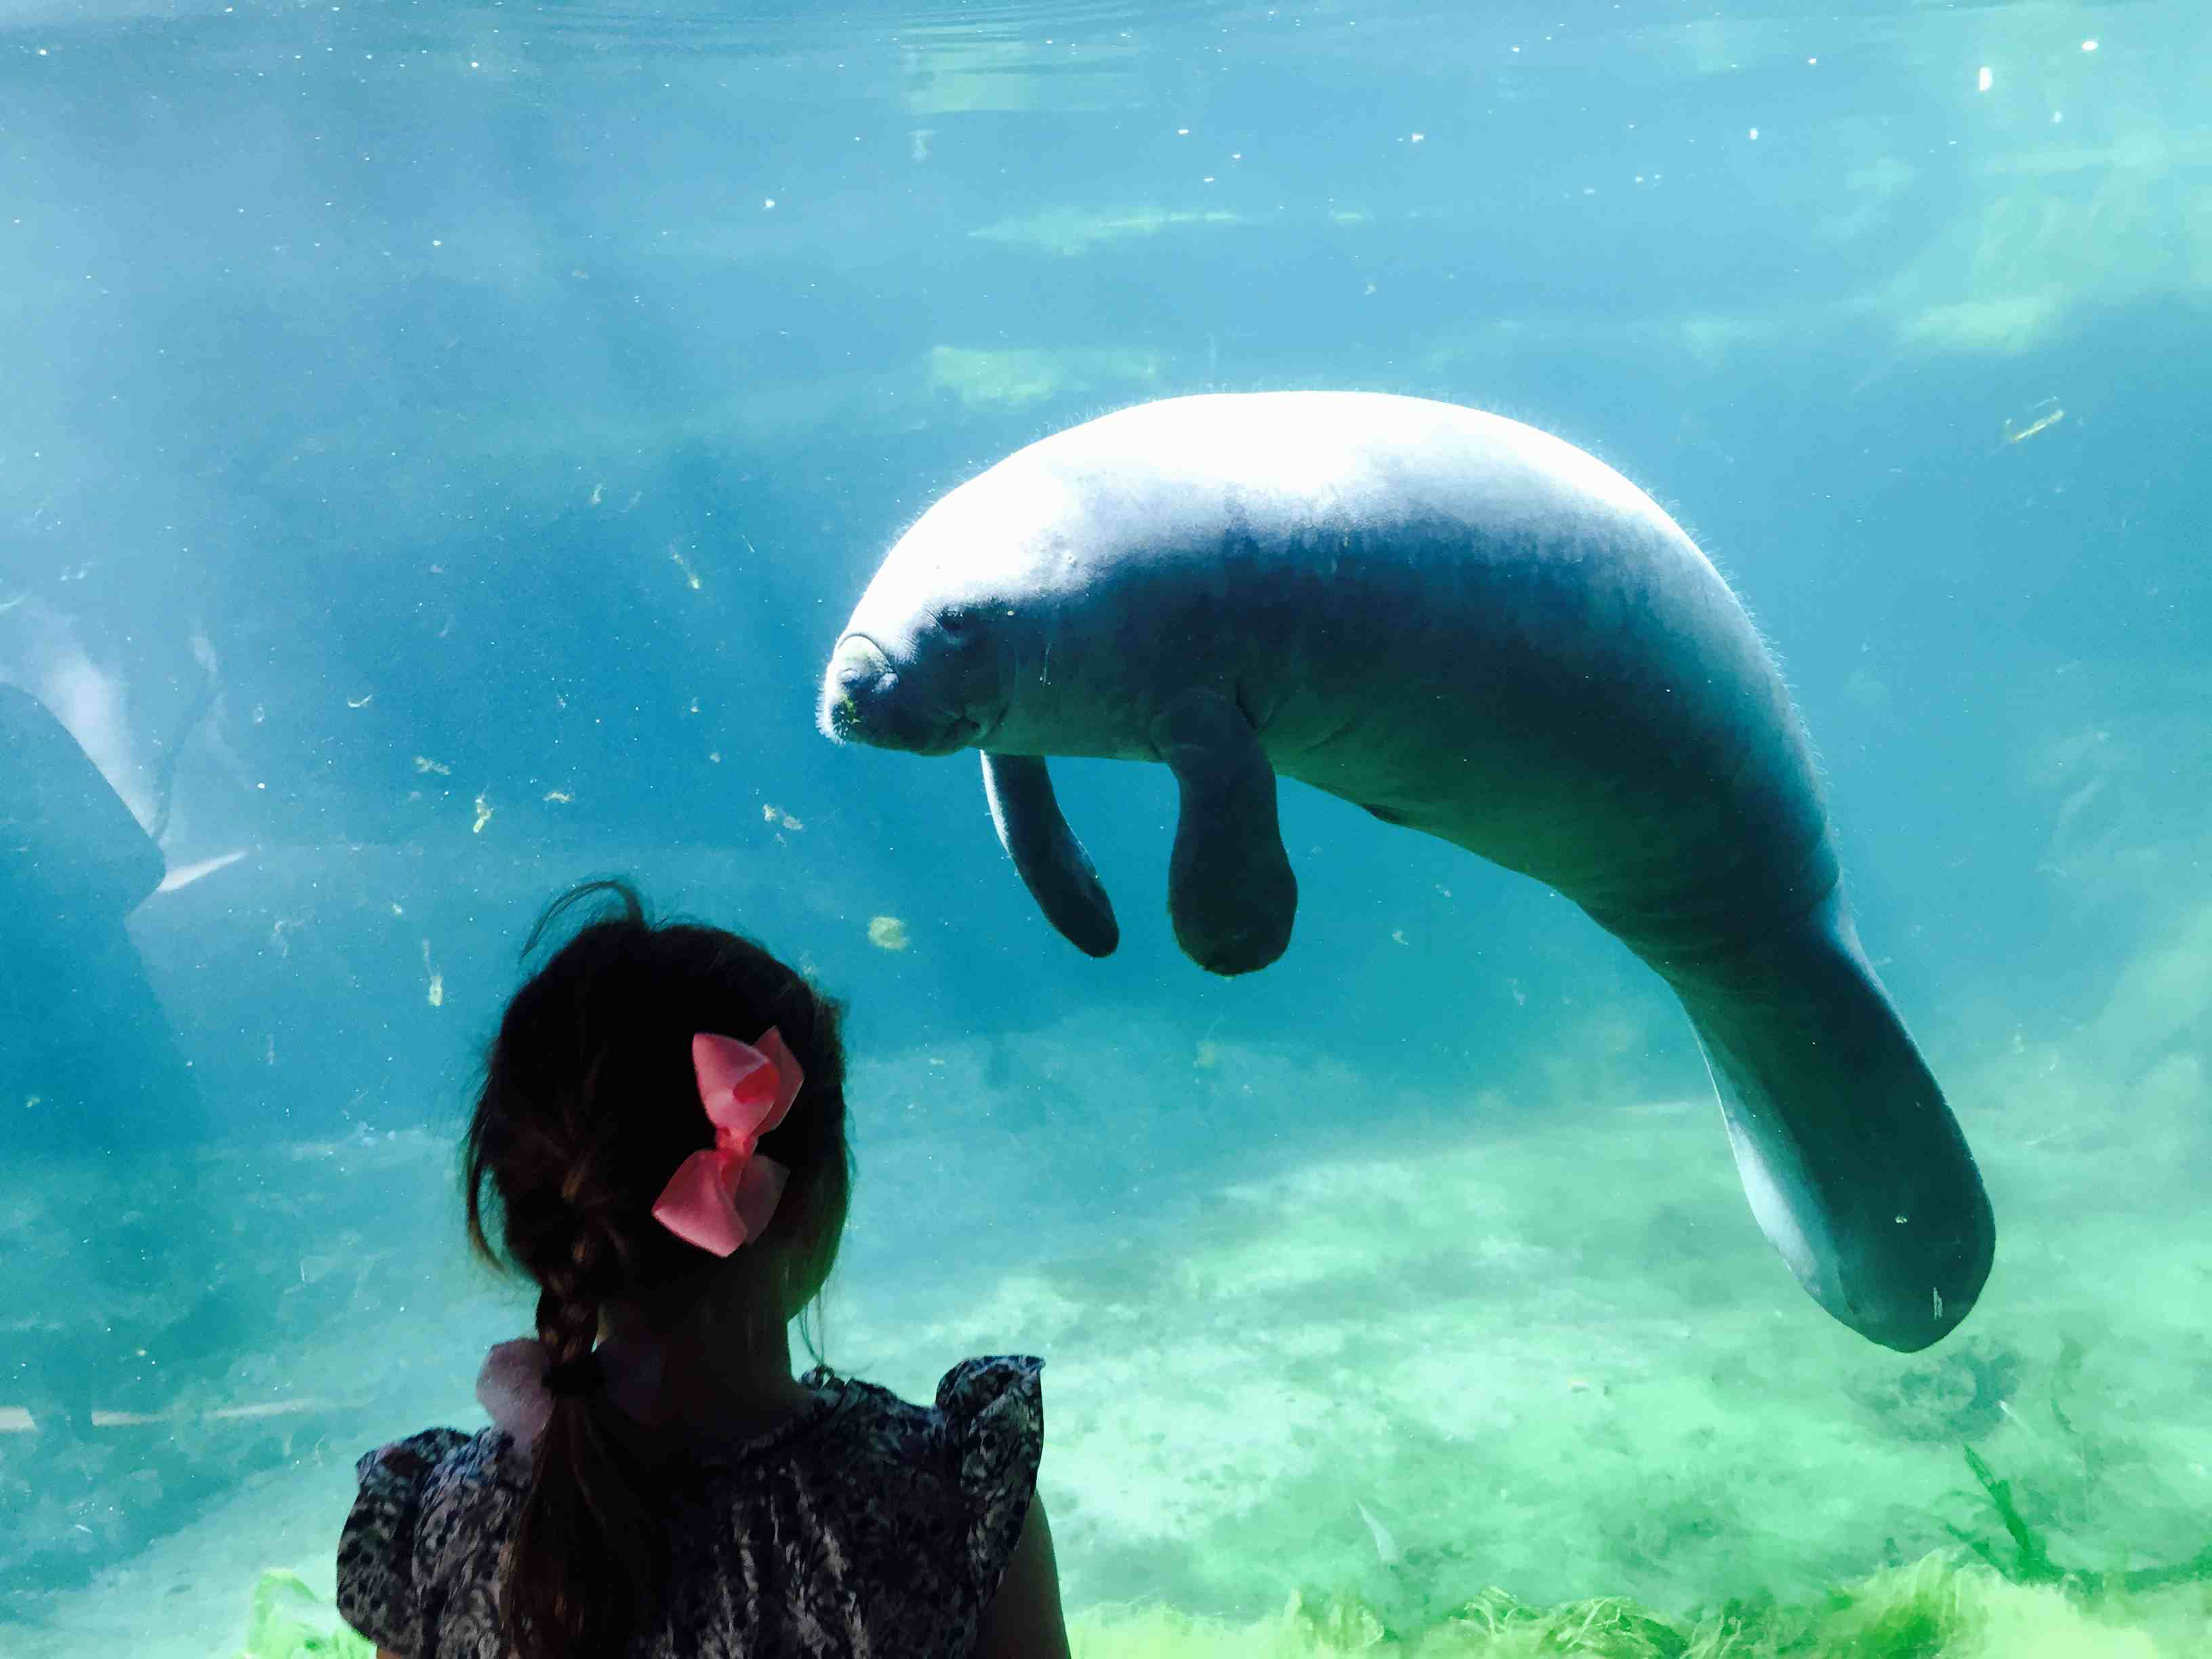 A young girl looking at a dugong behind a glass in an aquarium in Paris, France